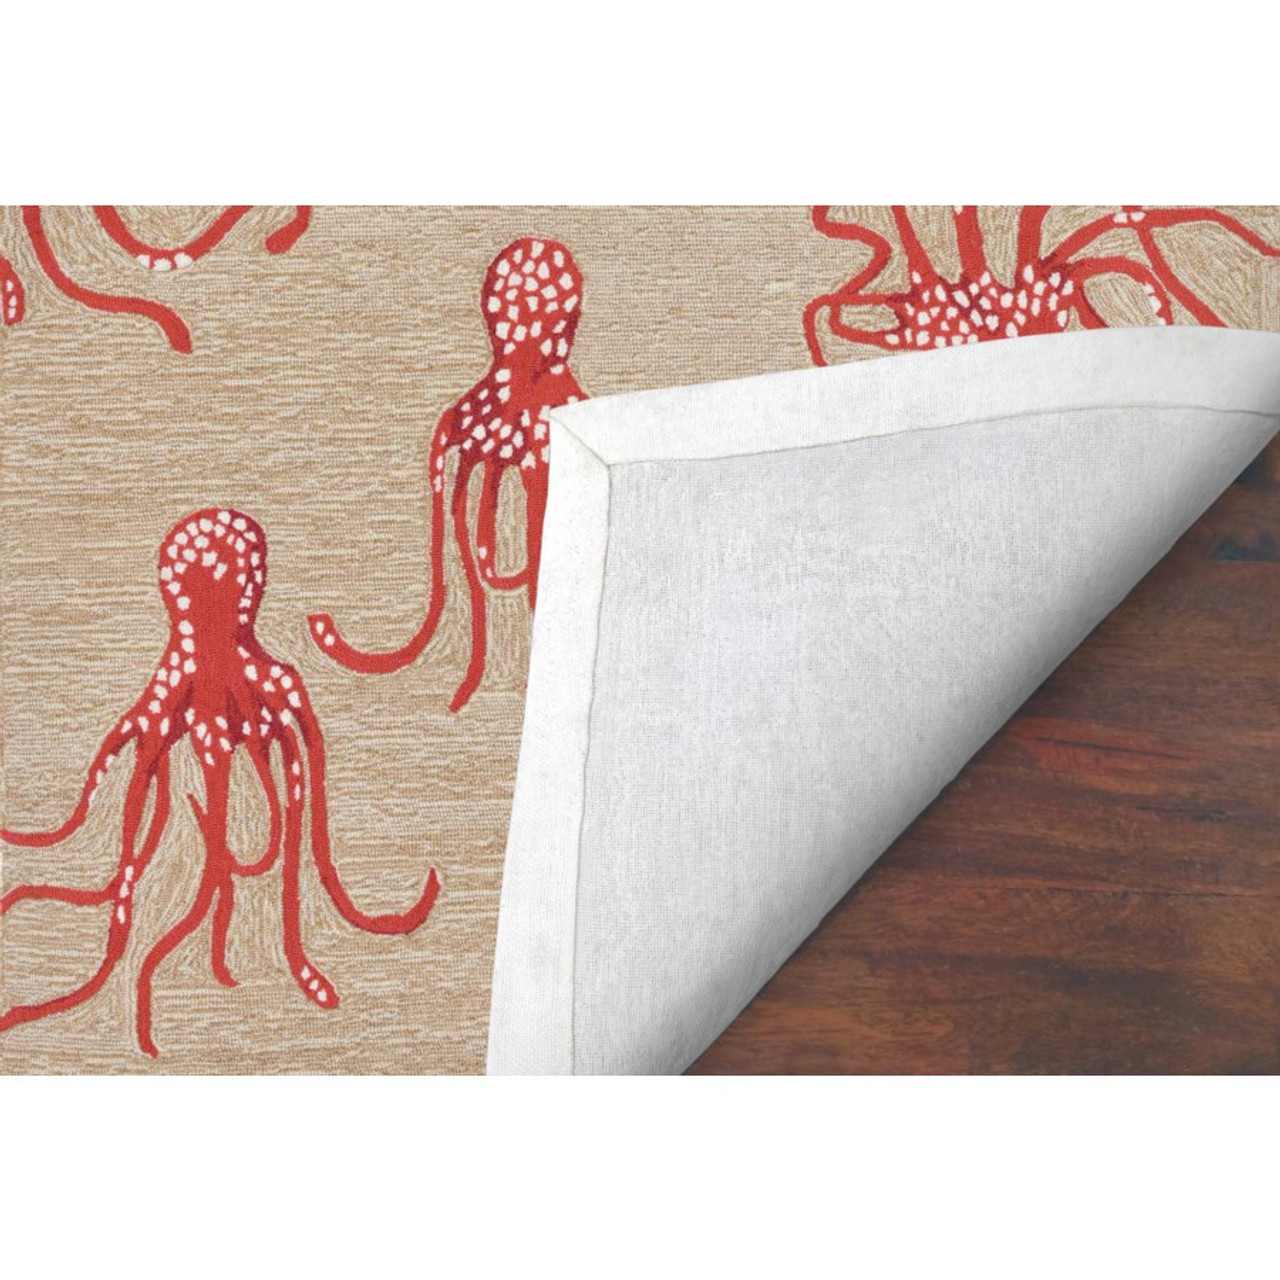 Coral Capri Octopus Indoor/Outdoor Rug - Backing